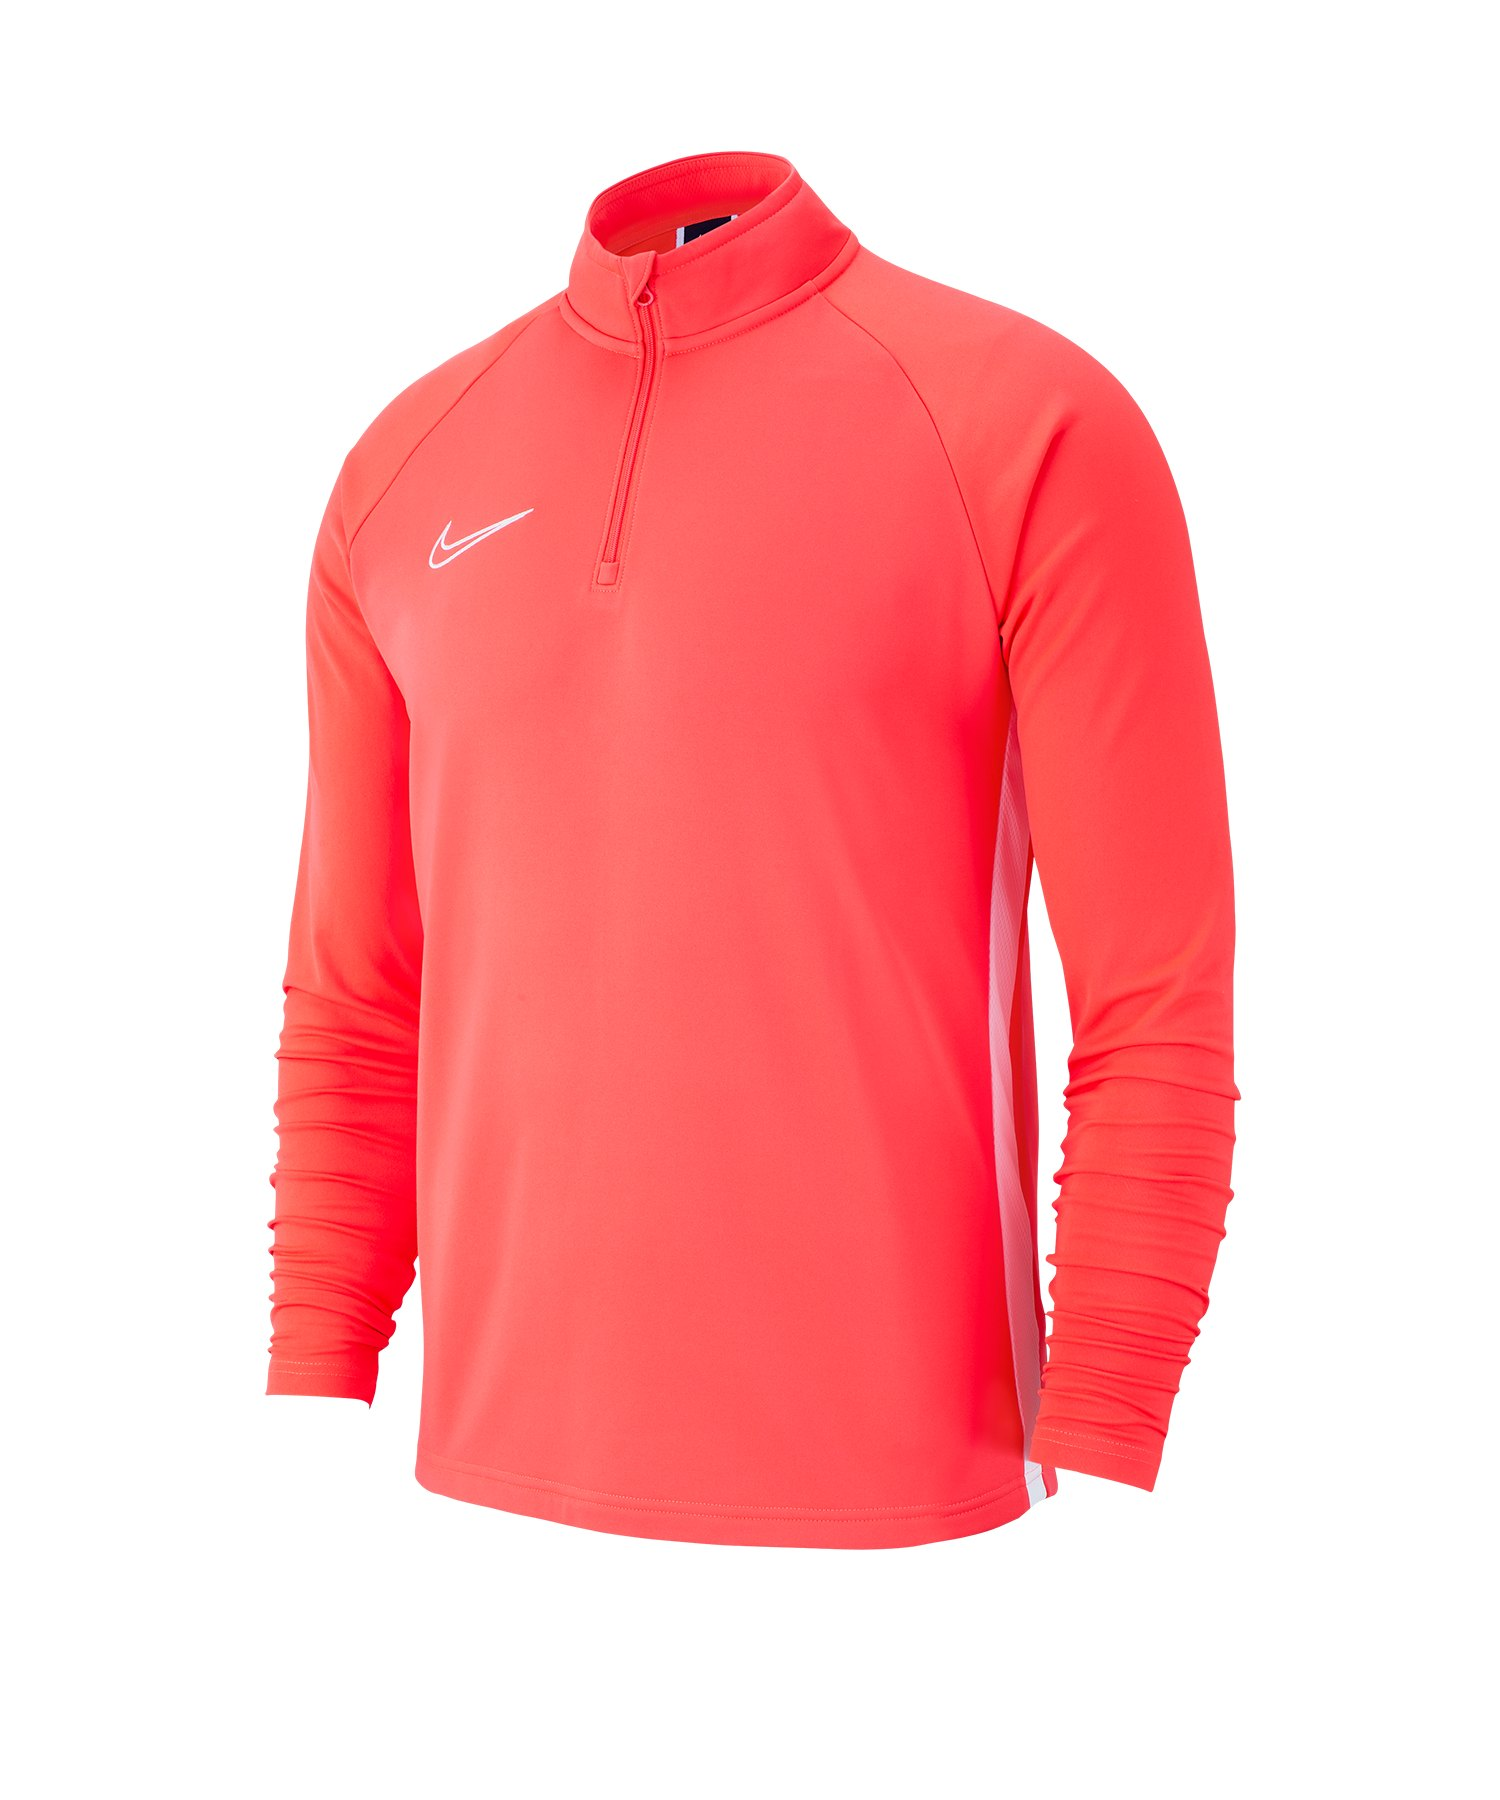 Nike Academy 19 1/4 Zip Drill Top Kids F671 - rot